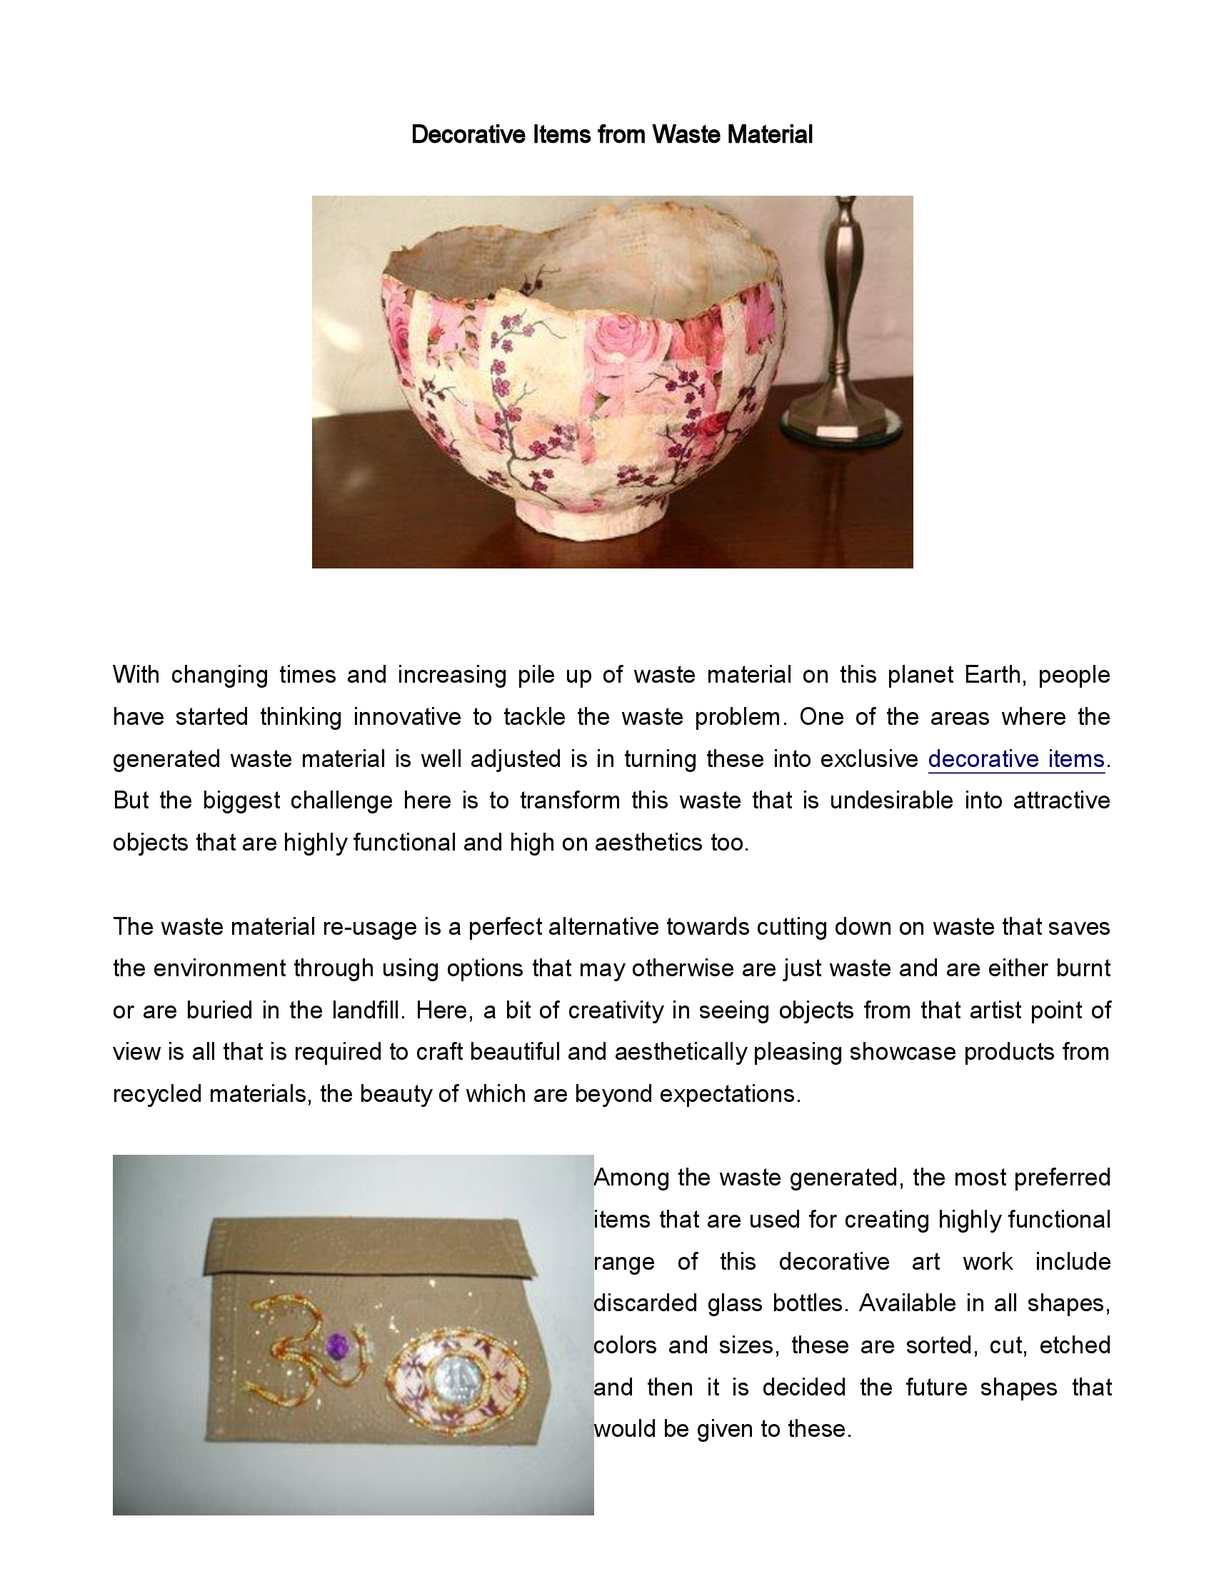 Calam o decorative items from waste material for Decorative items from waste material video